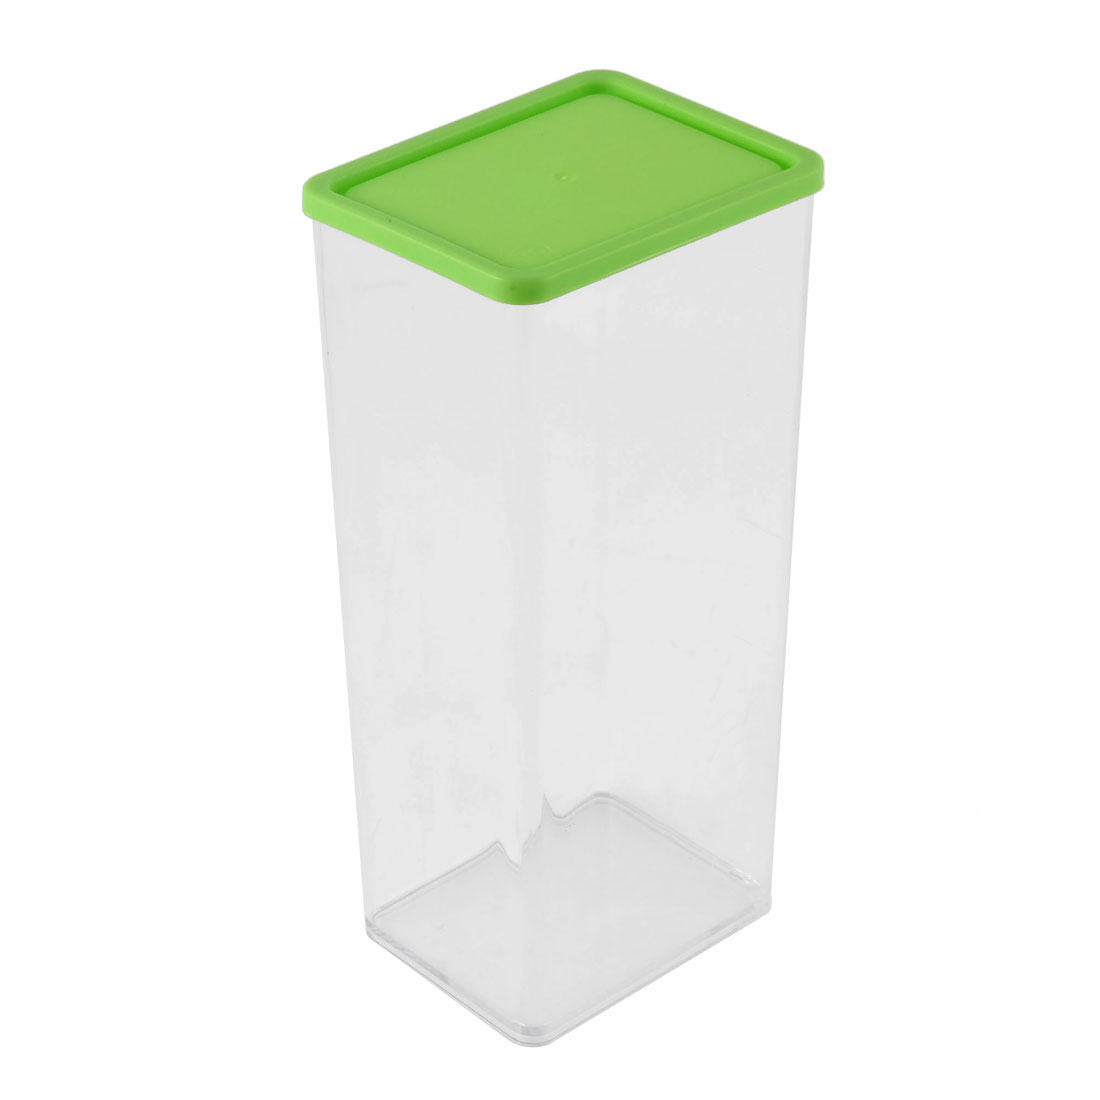 Office Plastic Cuboid Shaped Airtight Food Storage Box Container 1230ML Green